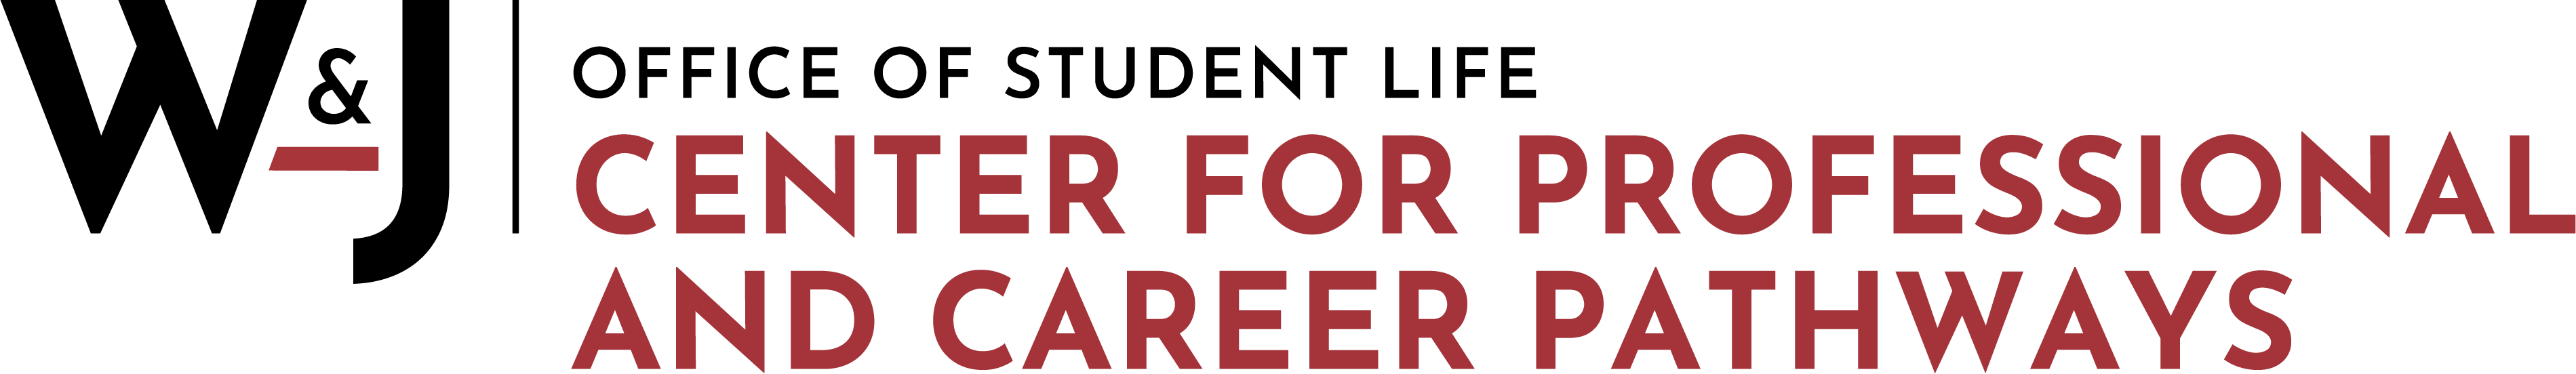 W&J Center for Professional and Career Pathways